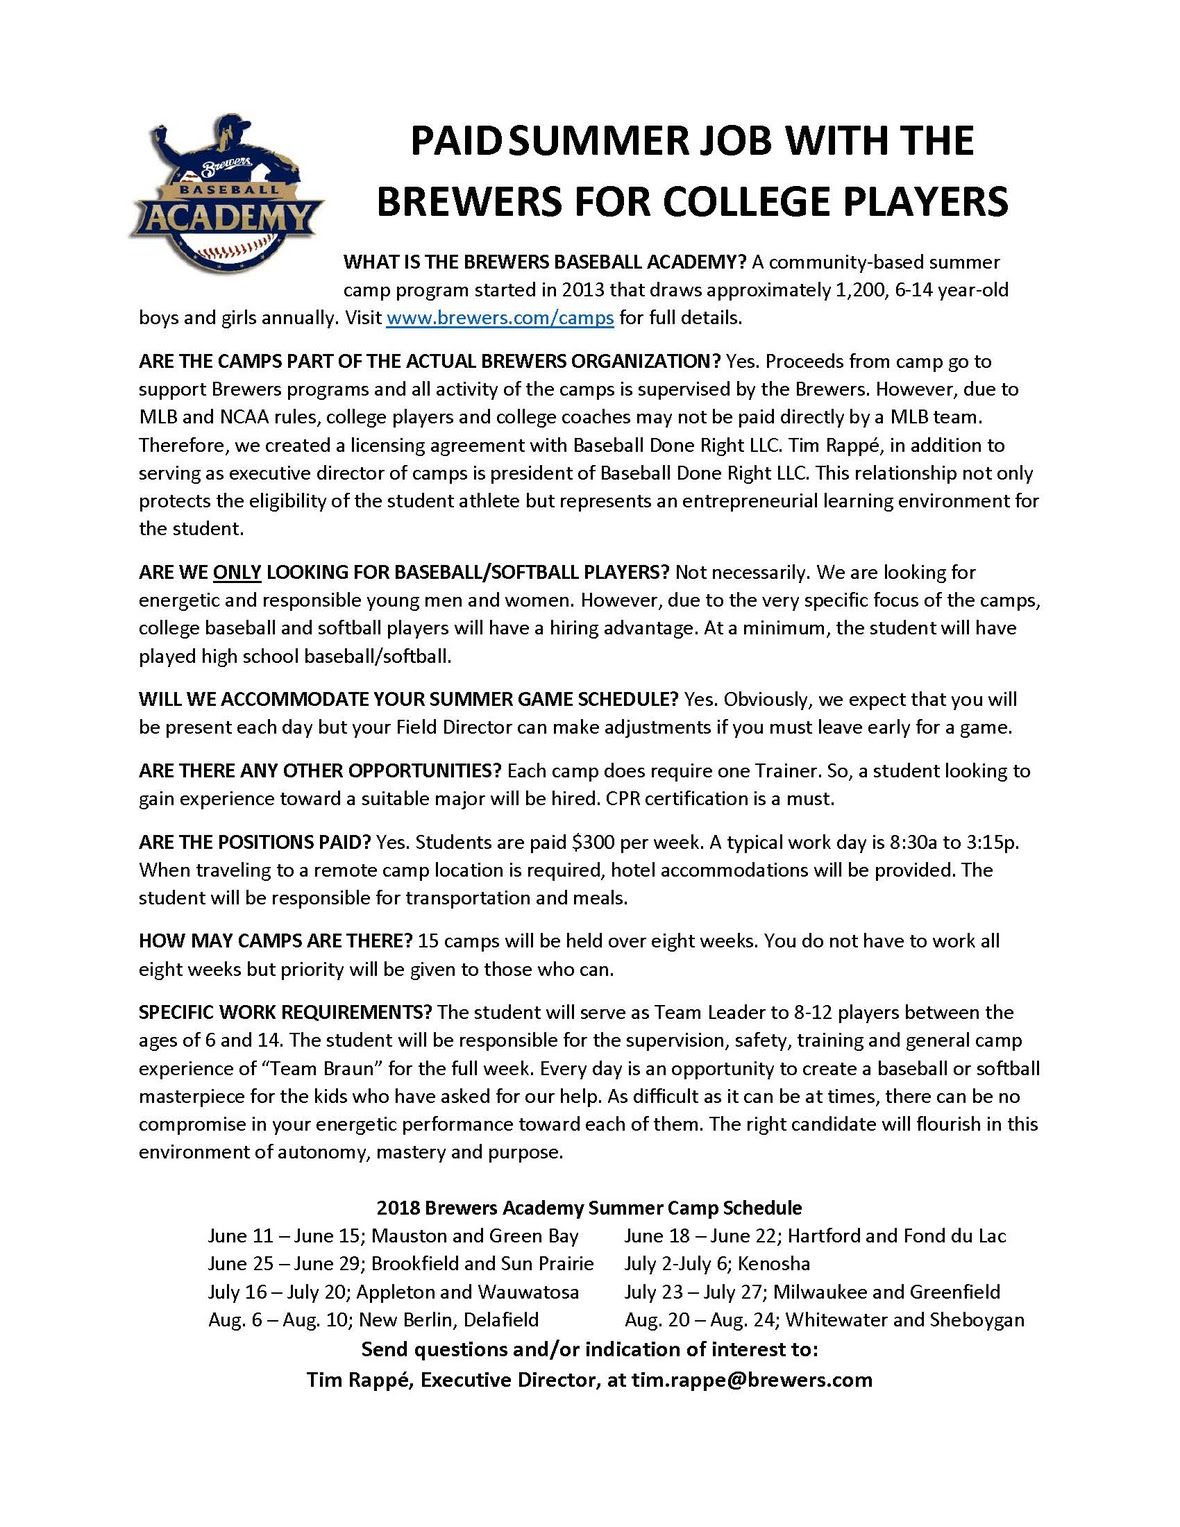 Brewers Academy Team Leaders Wanted 2018